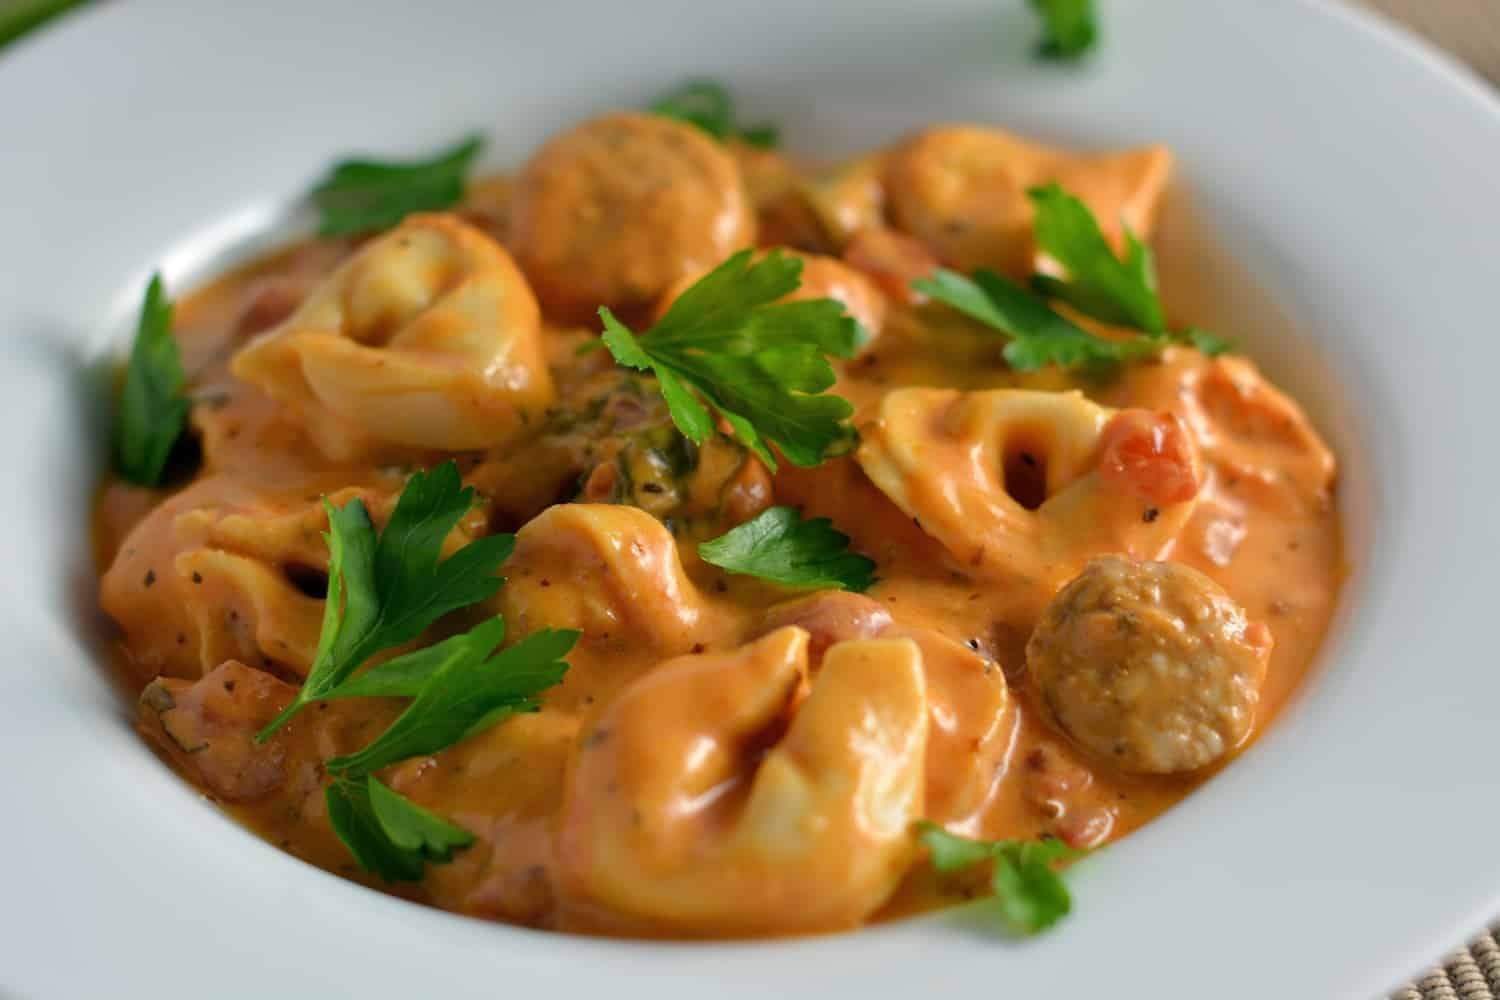 Creamy Tortellini and Sausage Soup can be made in the slow cooker, instant pot or on the stove top. Cheesy tortellini with zesty sauce in a tomato based soup! #sausagesoup #tortellinisoup #slowcookersoup www.savoryexperiments.com